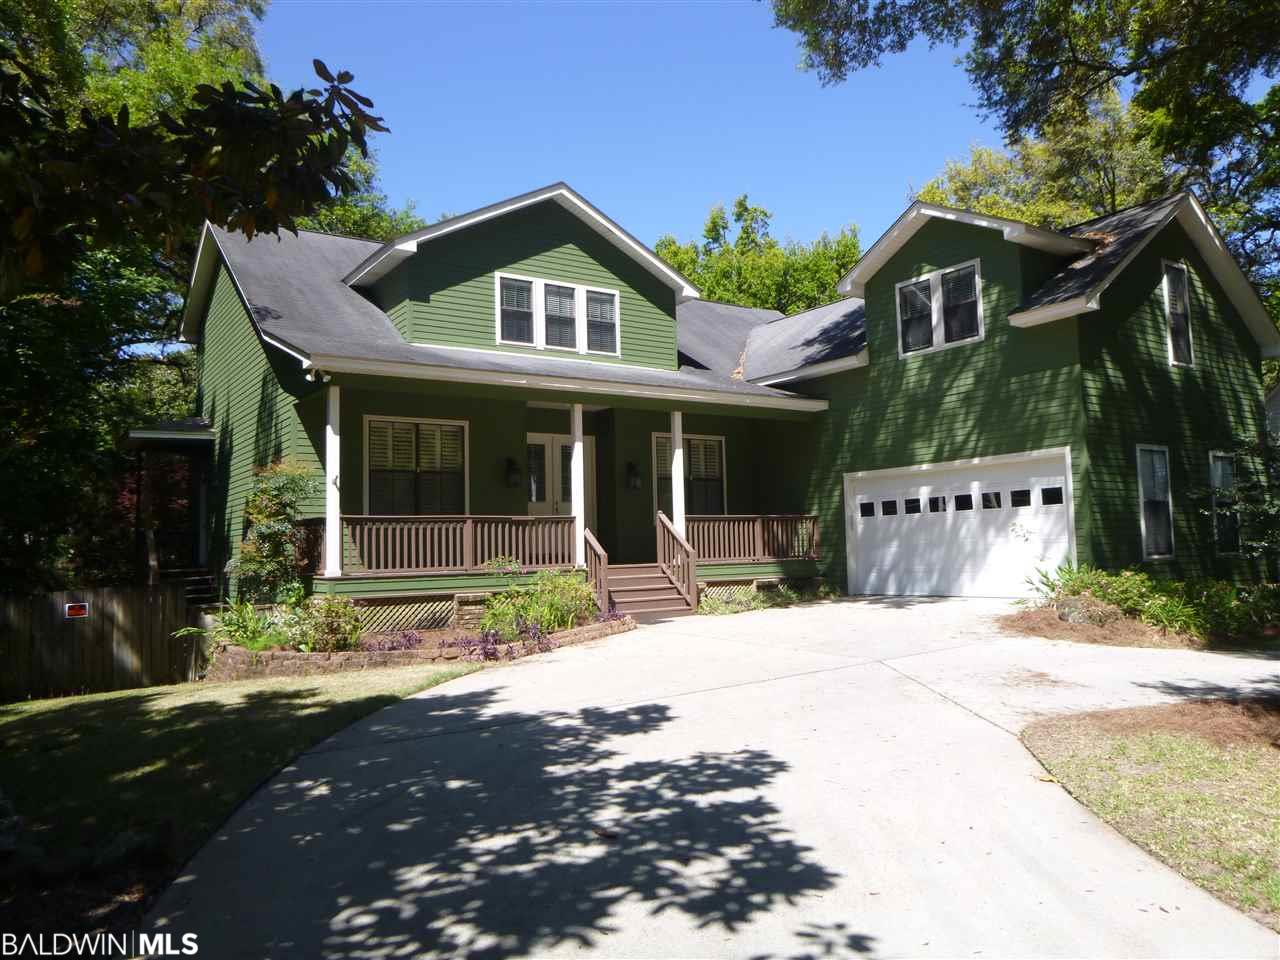 WOW!!!!!!! BIG REDUCTION ON A GREAT HOUSE. ***Welcome to the amazing Green House just one block from Downtown Fairhope.  Three levels of large rooms with four and one-half baths, laundry room on main level and one on the second floor.  Wonderful screened porch on the main level...perfect for entertaining and another one on the lower level that opens out to a landscaped backyard with fruit trees and lots of plants.  Home has lots of amenities...SEE LIST AND LAYOUT OF ALL THREE FLOORS IN MLS DOCUMENTS.